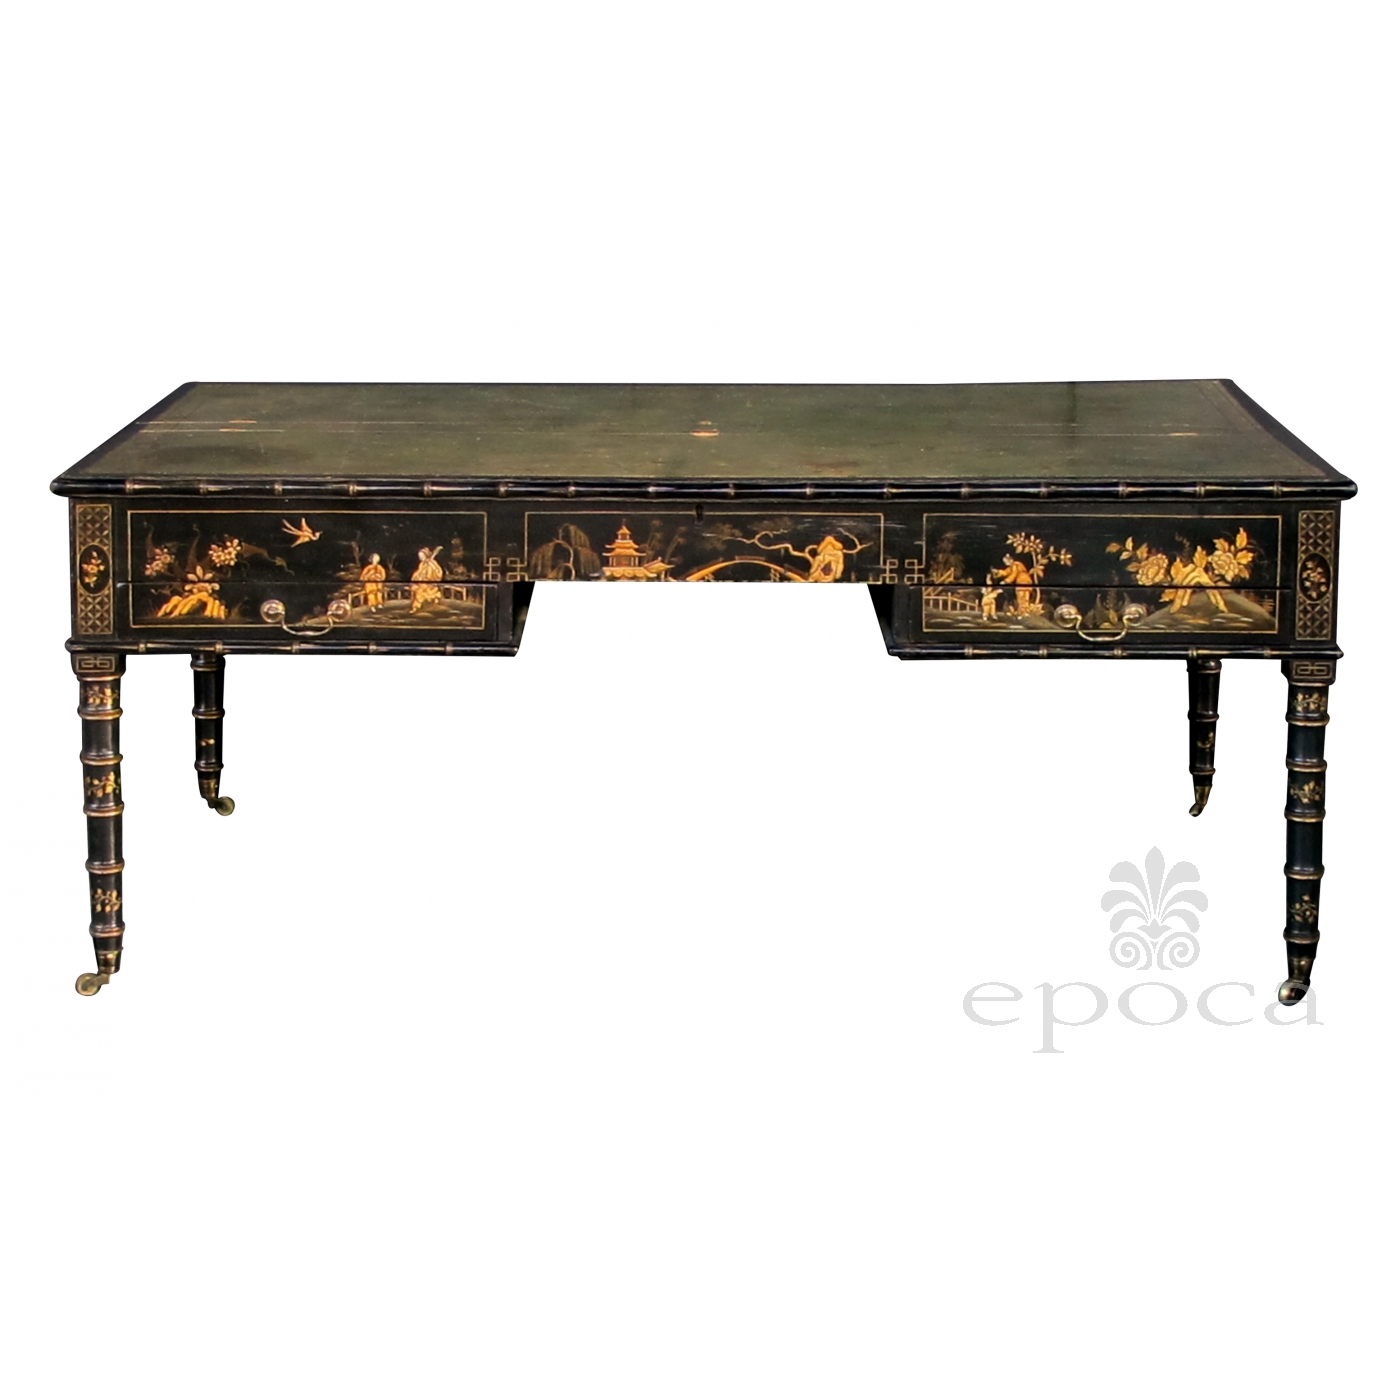 Rare English Regency Style Anned Map Table Now Adapted To A Reverse Partners Desk